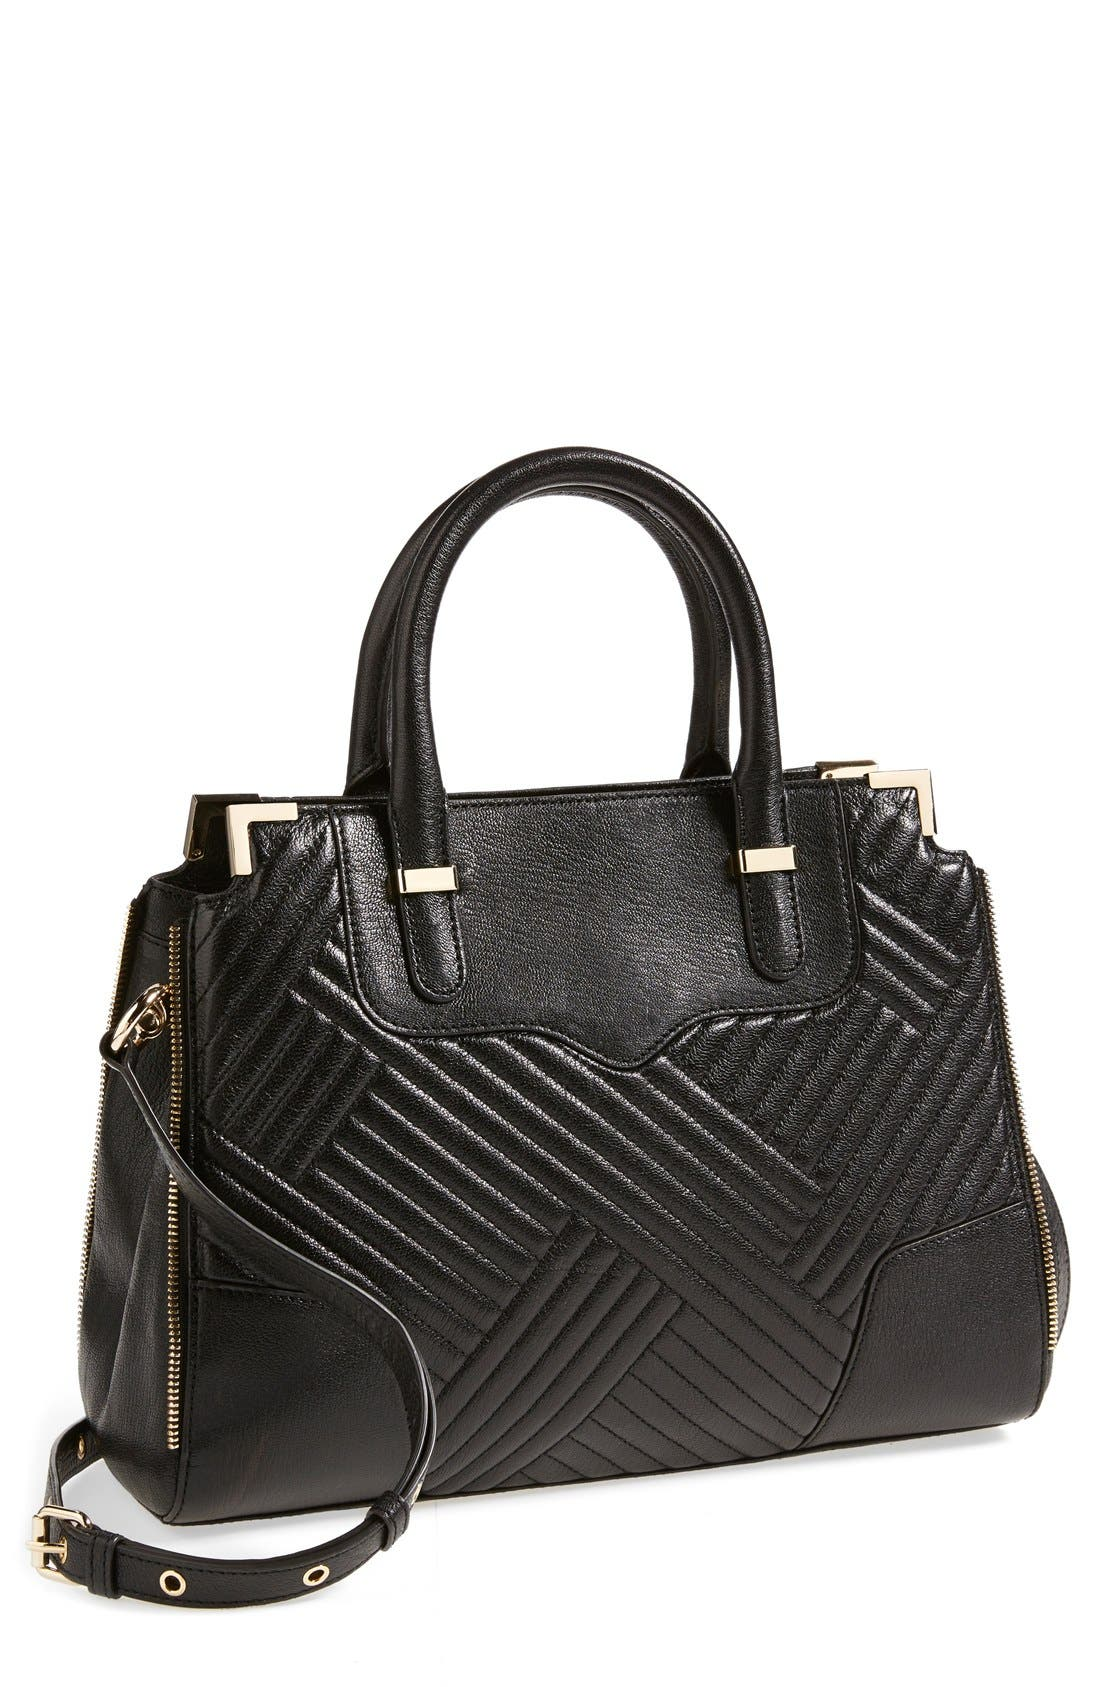 Main Image - Rebecca Minkoff 'Amorous' Quilted Satchel